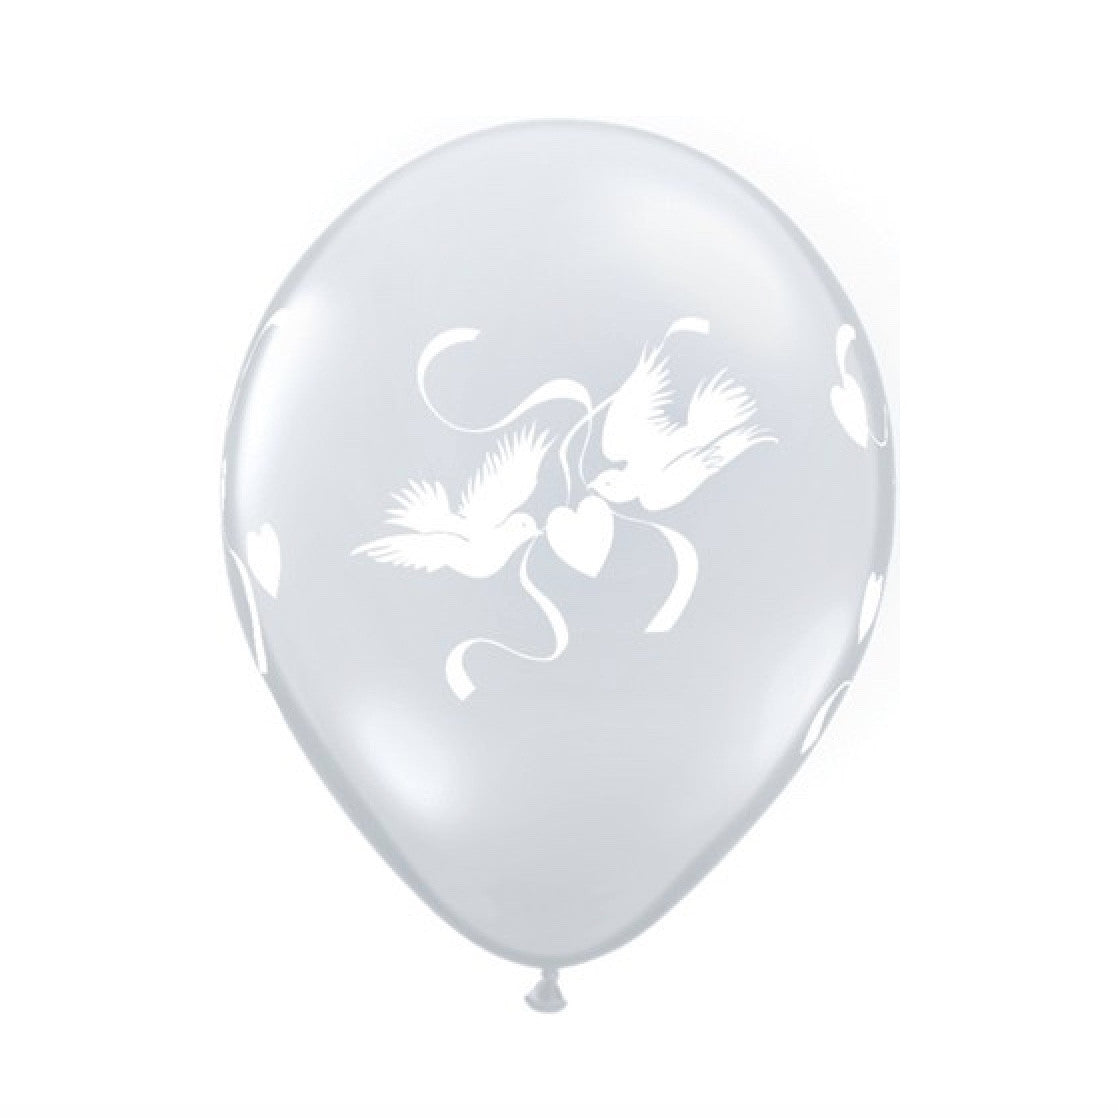 Love Doves Diamond Clear Transparent Balloons, SE-Surprize Enterprize, Putti Fine Furnishings